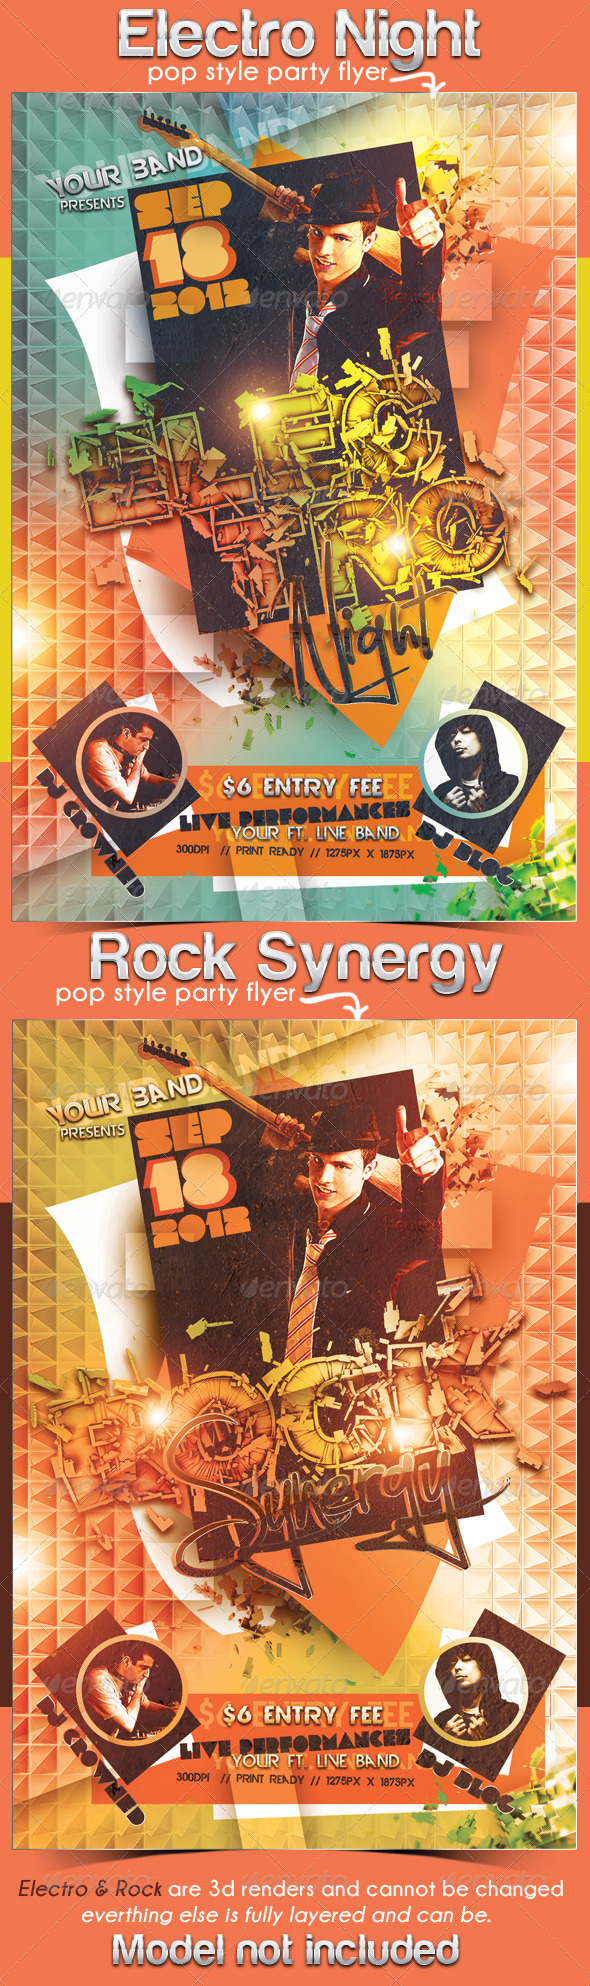 Electro Night and Rock Synergy Party Flyers  - Clubs & Parties Events